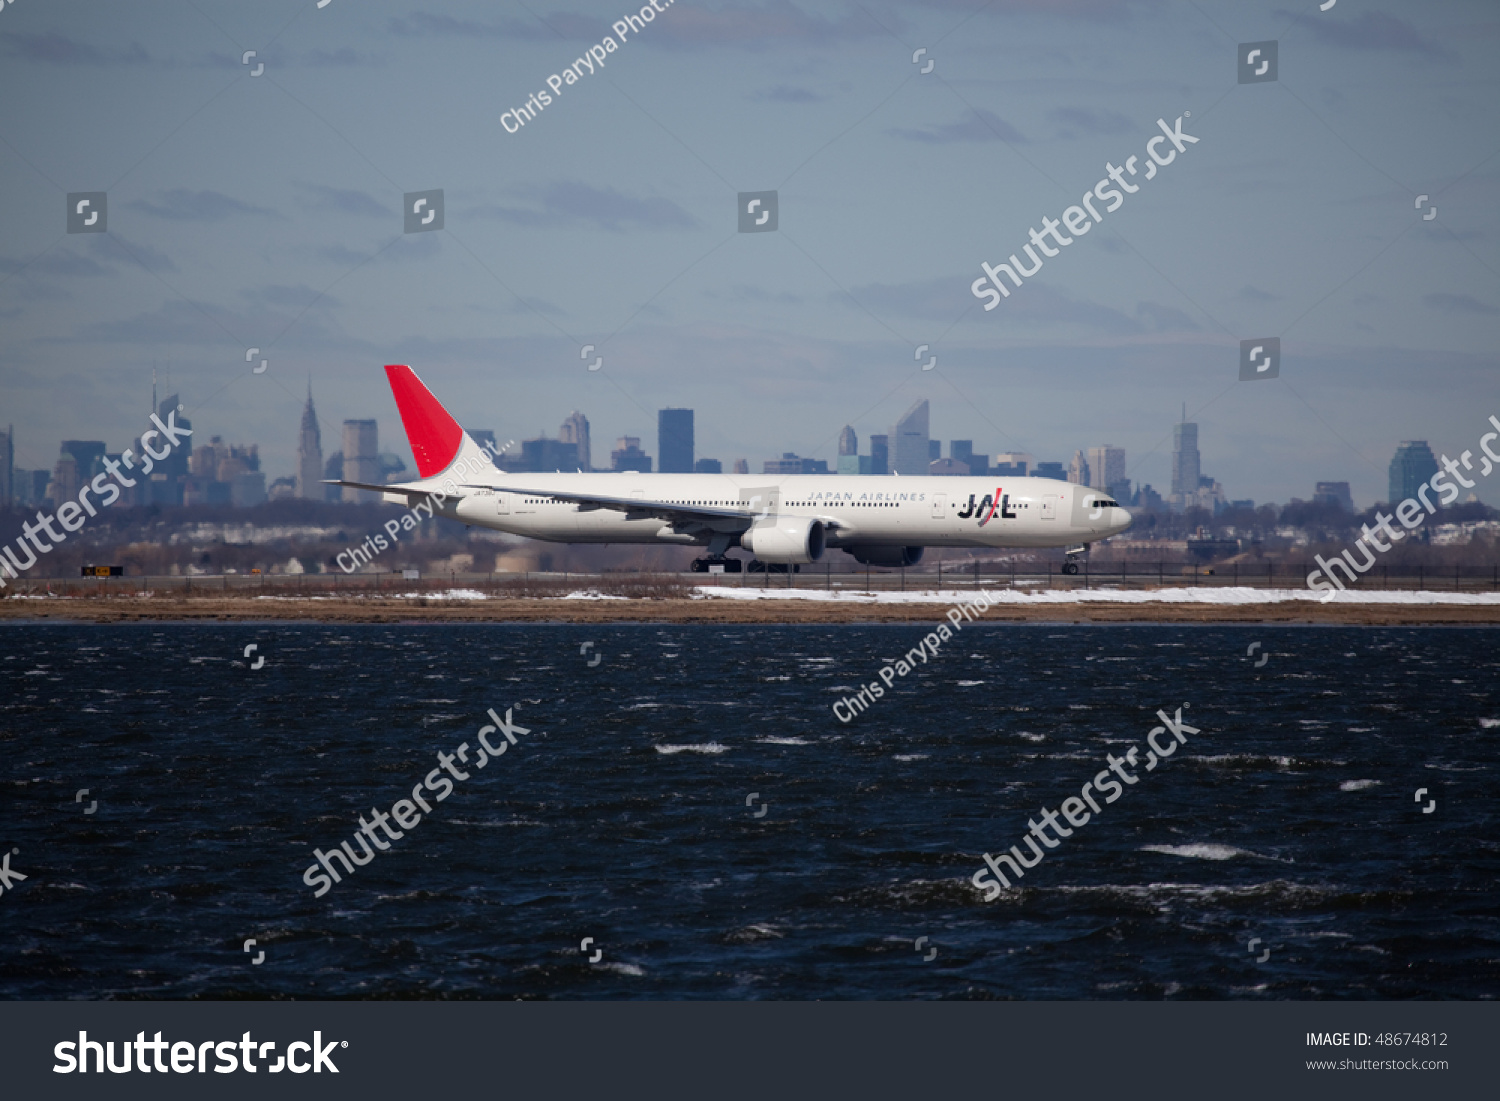 JFK Airport: overview of one of the largest air harbors in New York